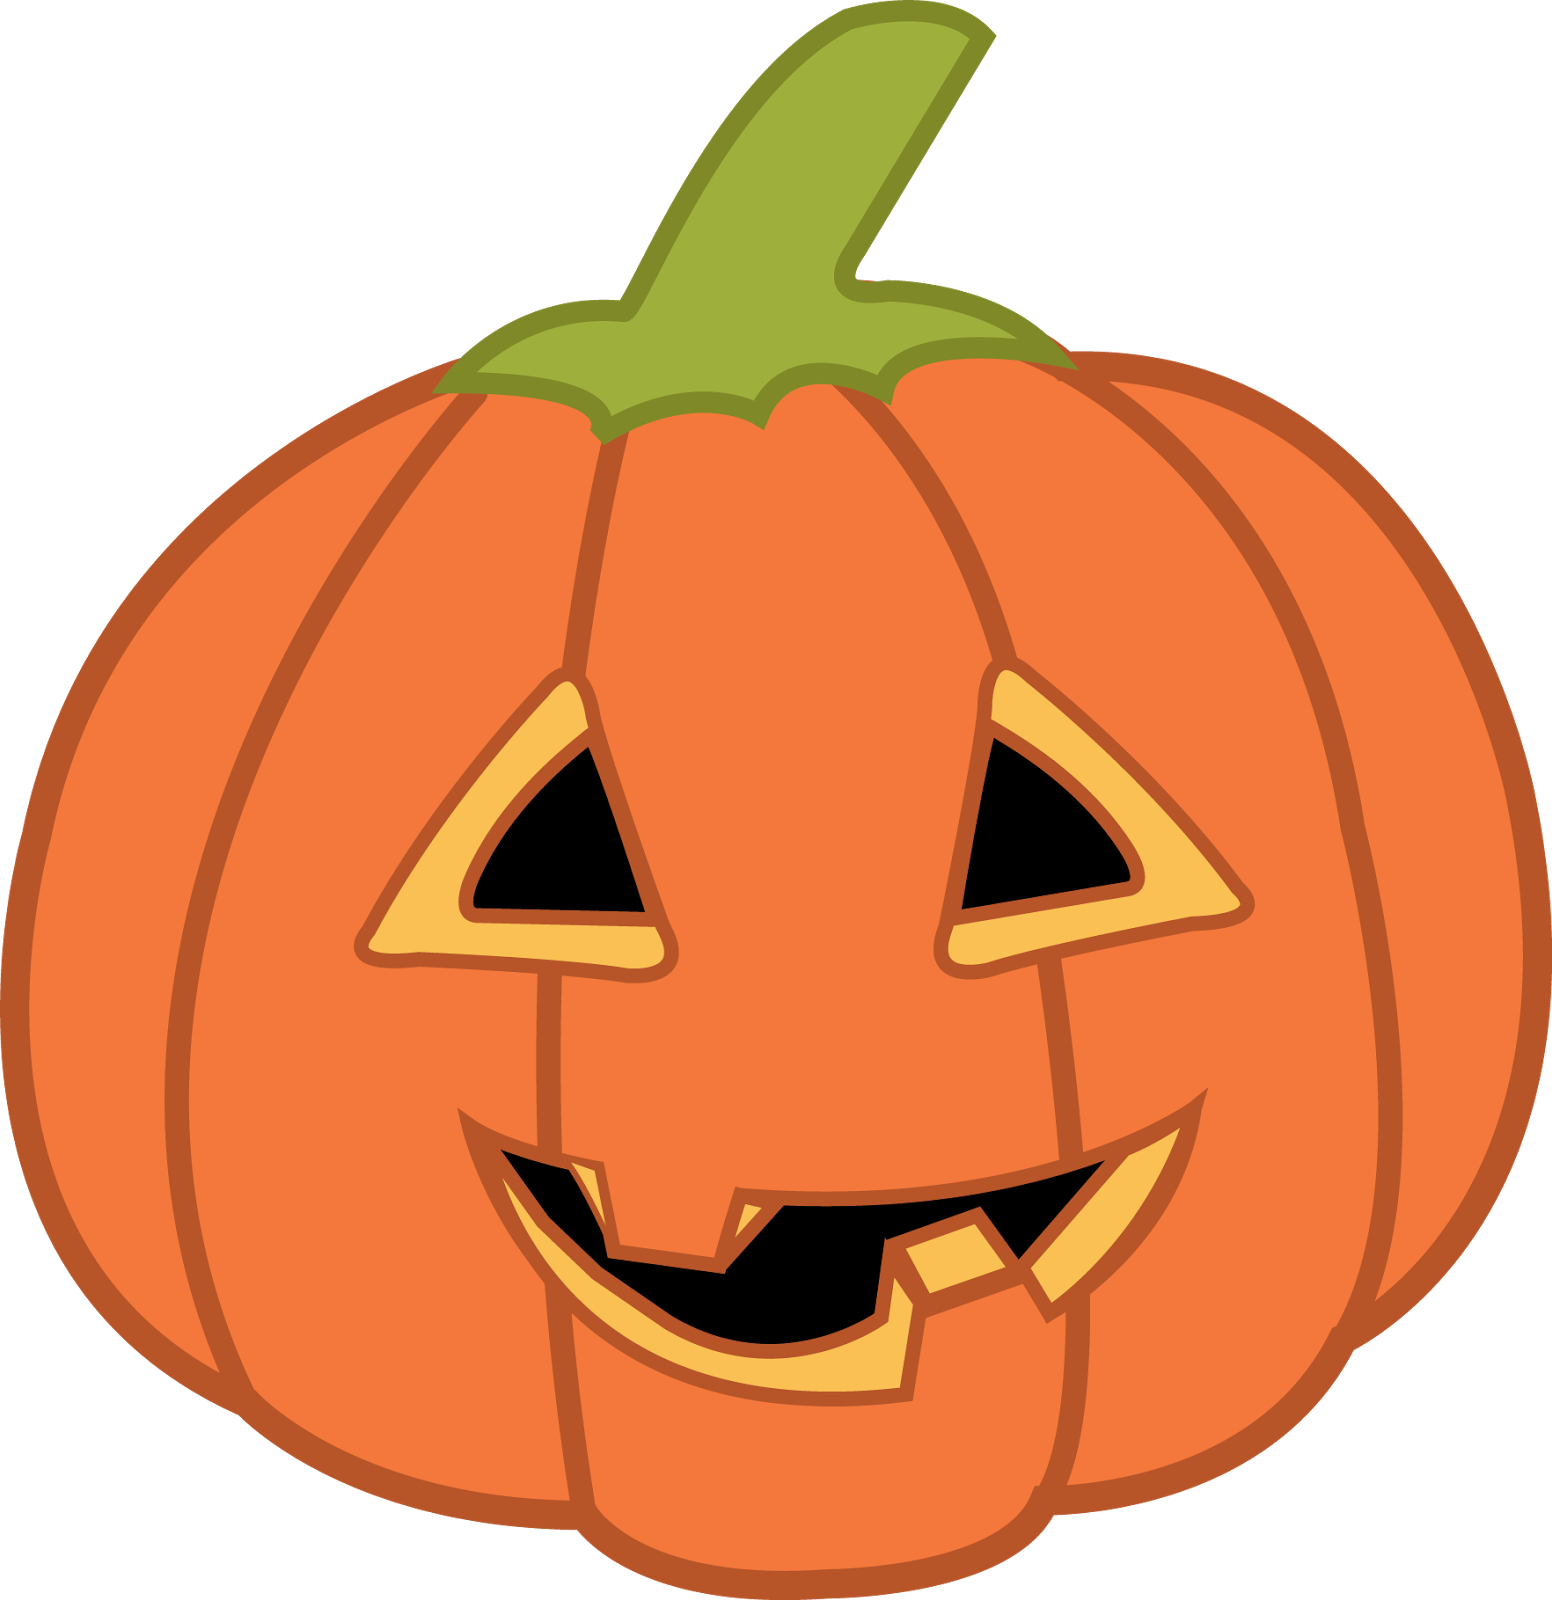 Halloween Pumpkin Clipart. | Oh My Fiesta! in english